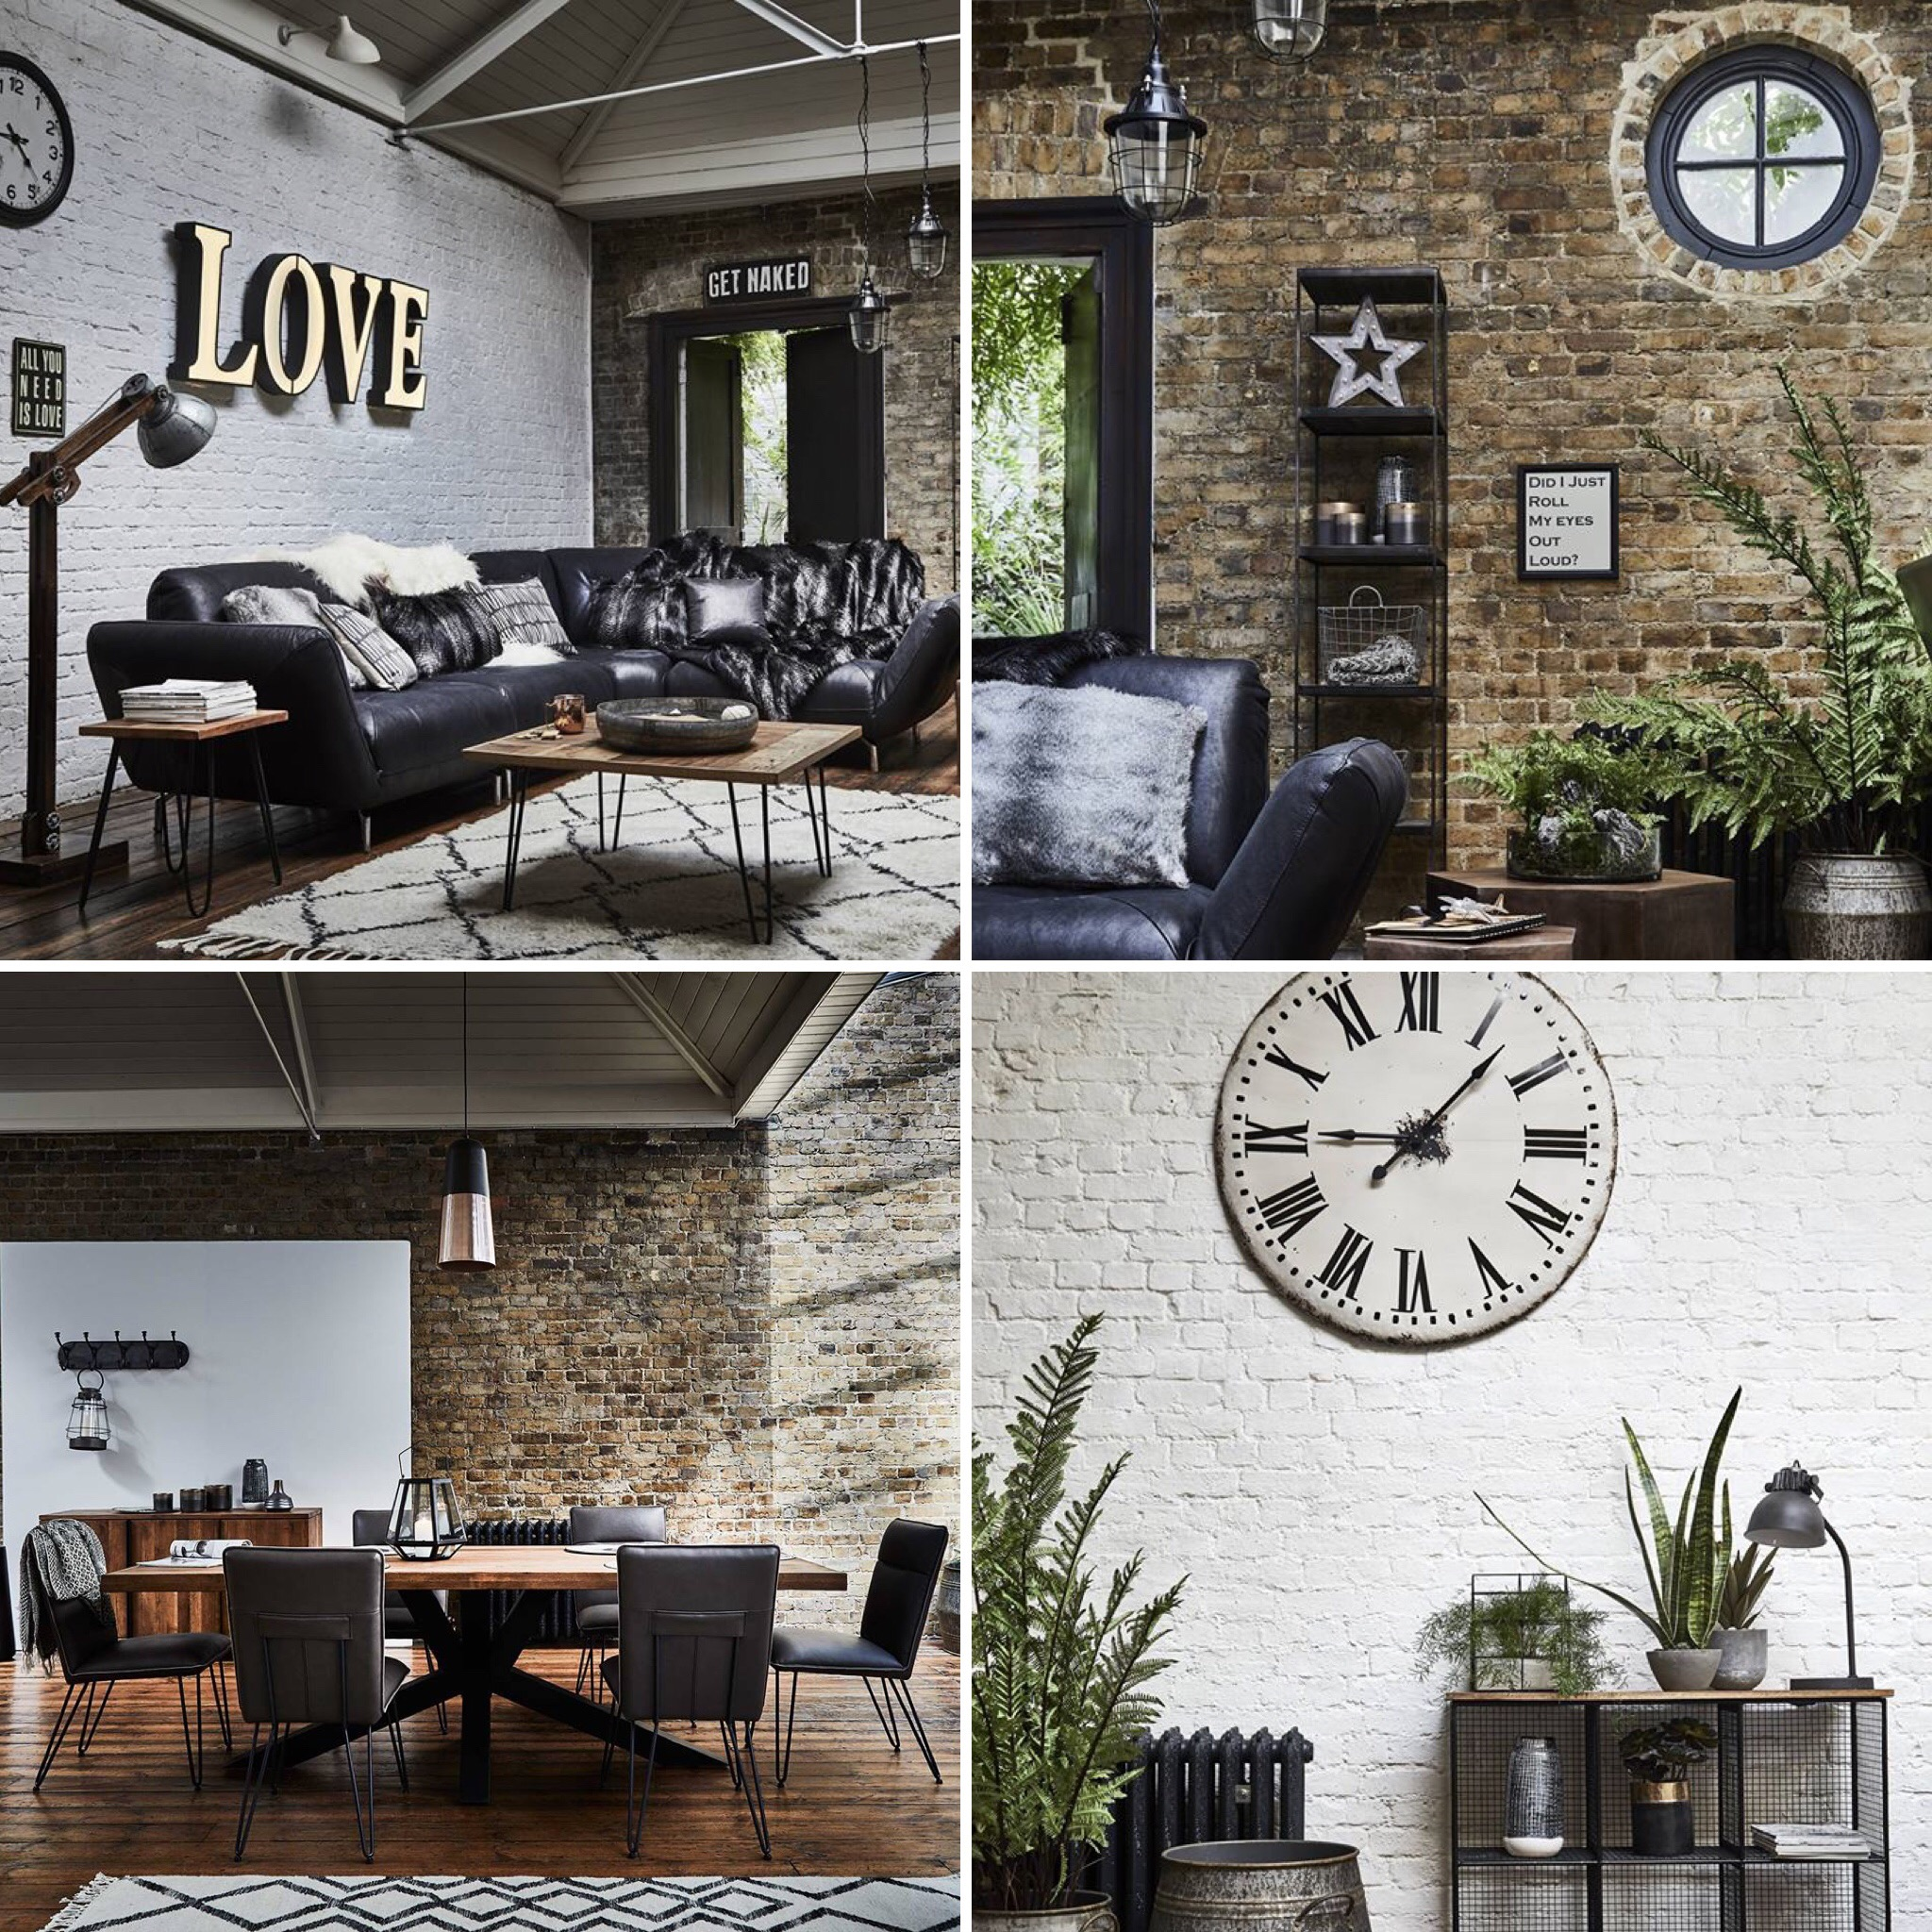 Barker and Stonehouse